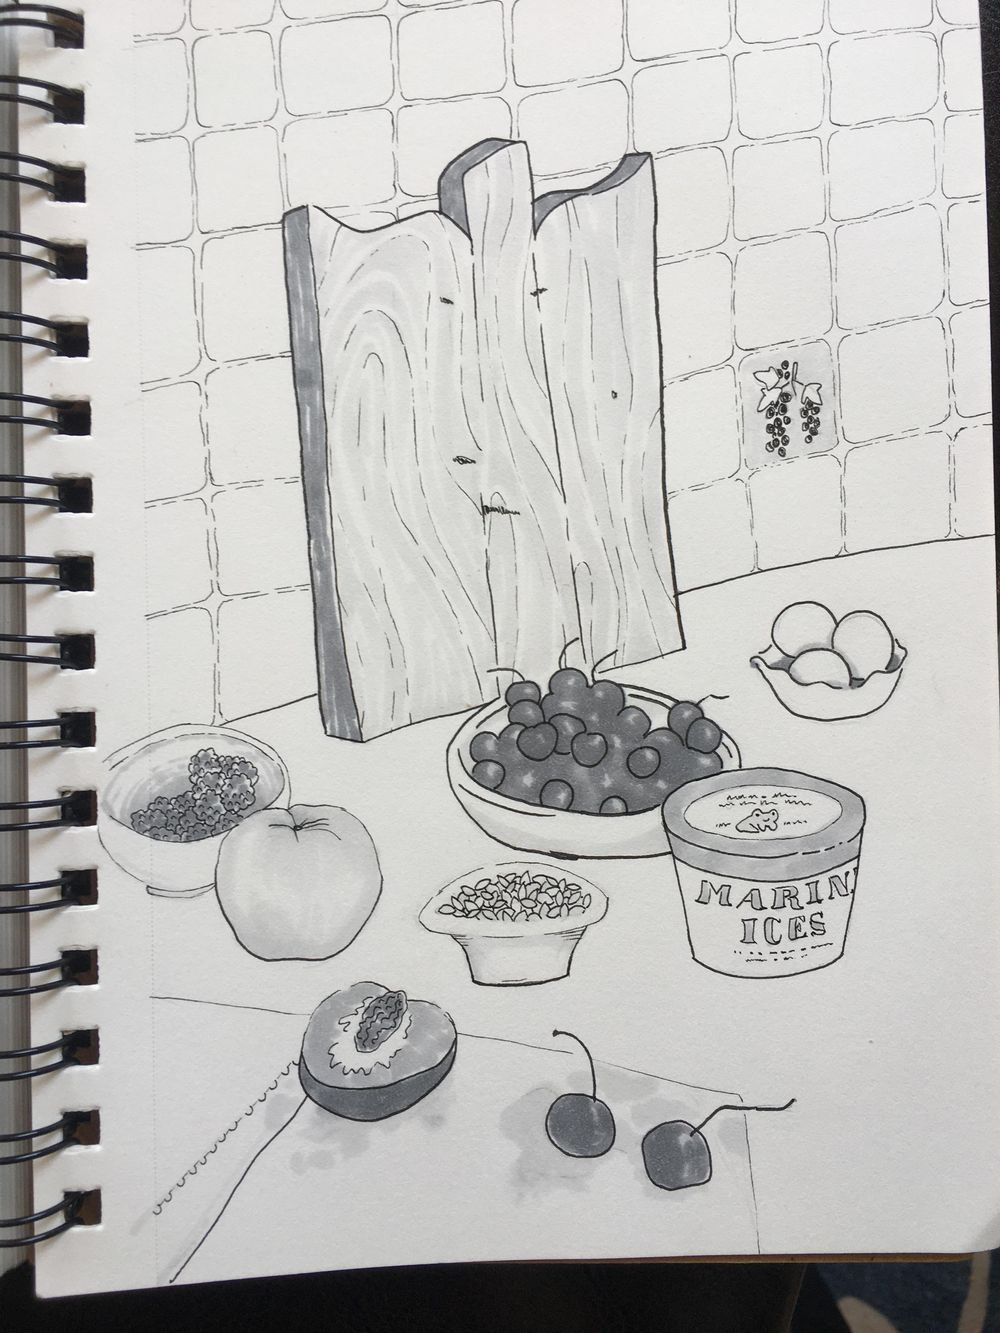 Still Life Compare - image 1 - student project